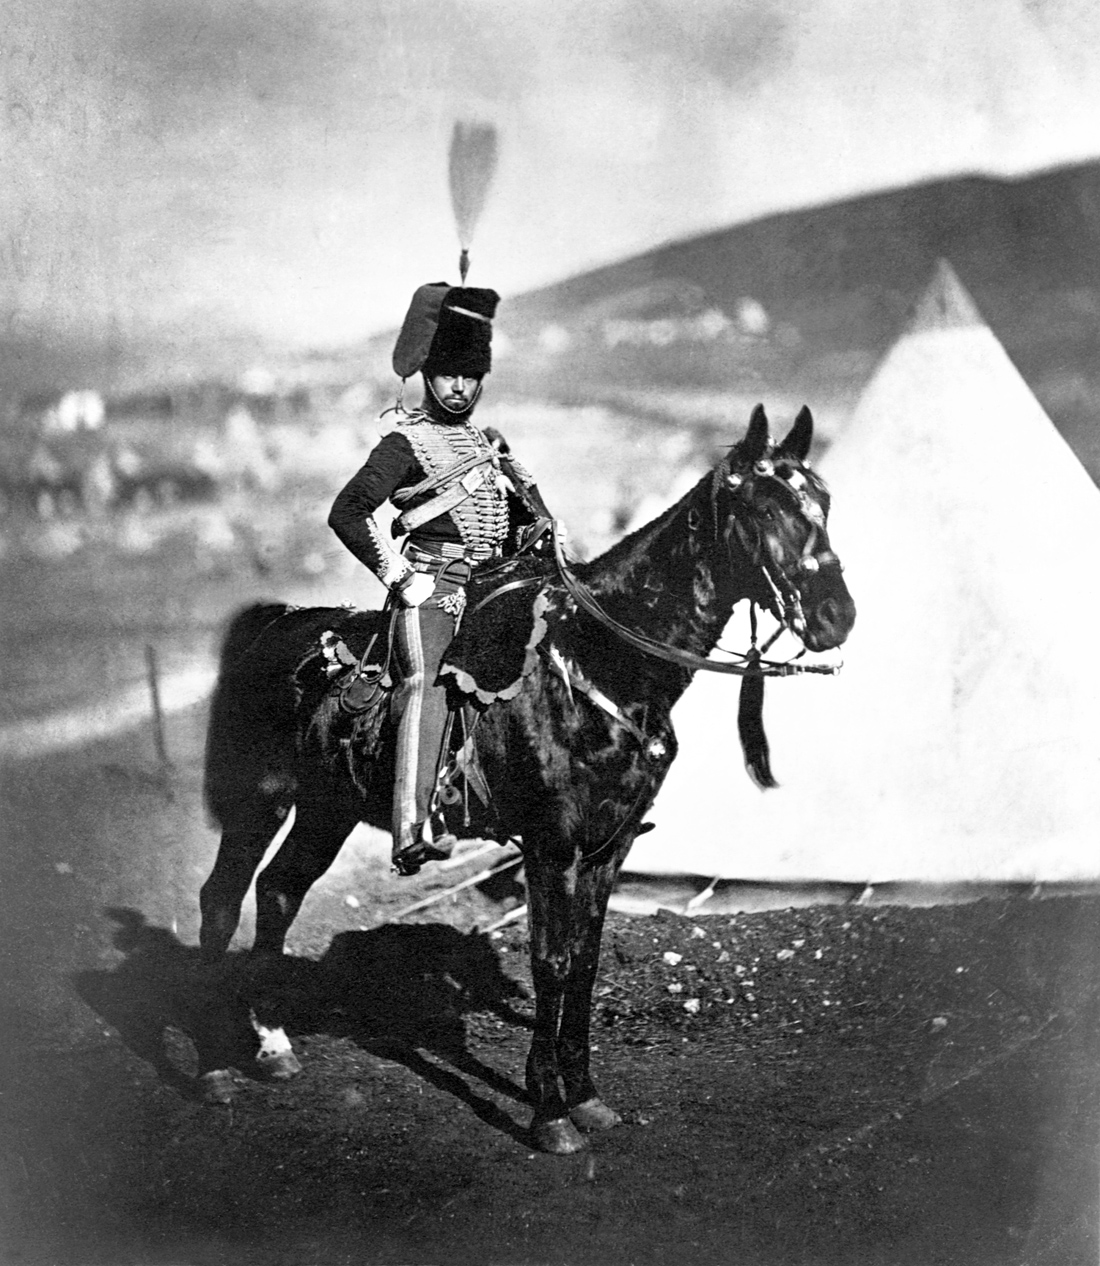 Cornet Wilkin of the 11th Hussars at camp in the Crimean War, 1855. Photograph by Roger Fenton. United States Library of Congress Prints and Photographs division, Washington D.C.